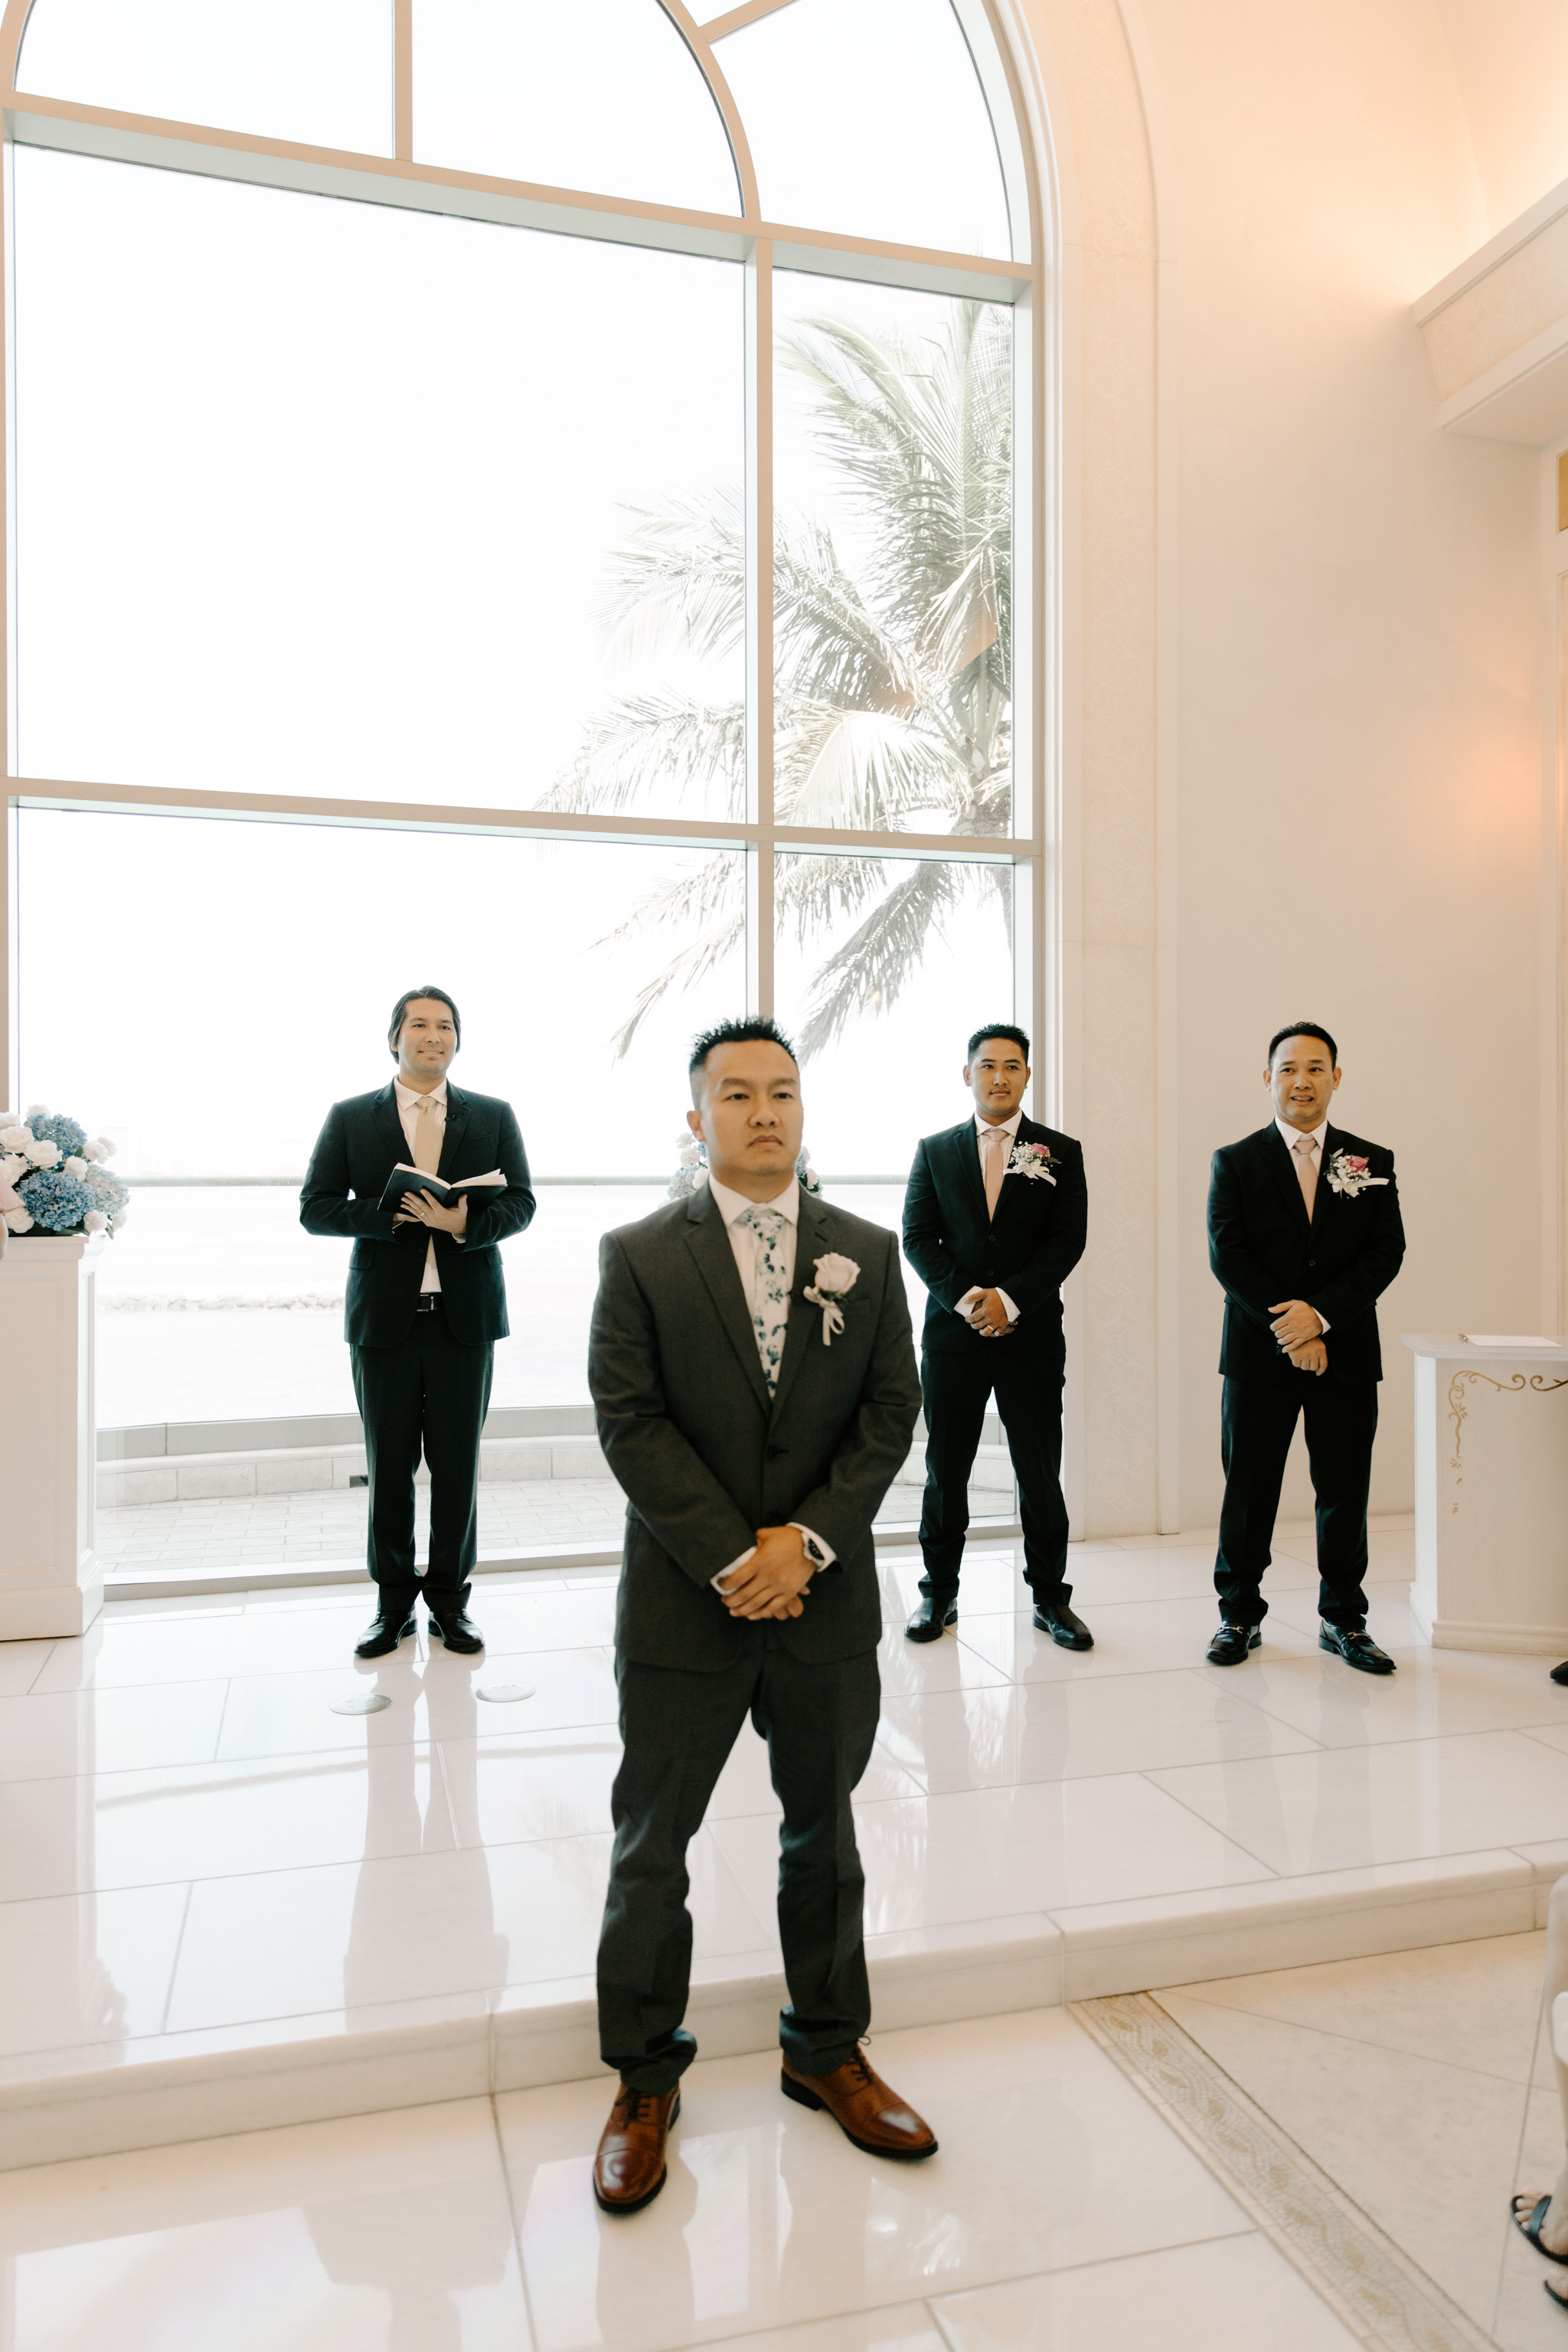 Groom waiting for his bride to walk down the aisle - 53 By The Sea Hawaii Wedding Naupaka Chapel By Oahu Wedding Photographer Desiree Leilani